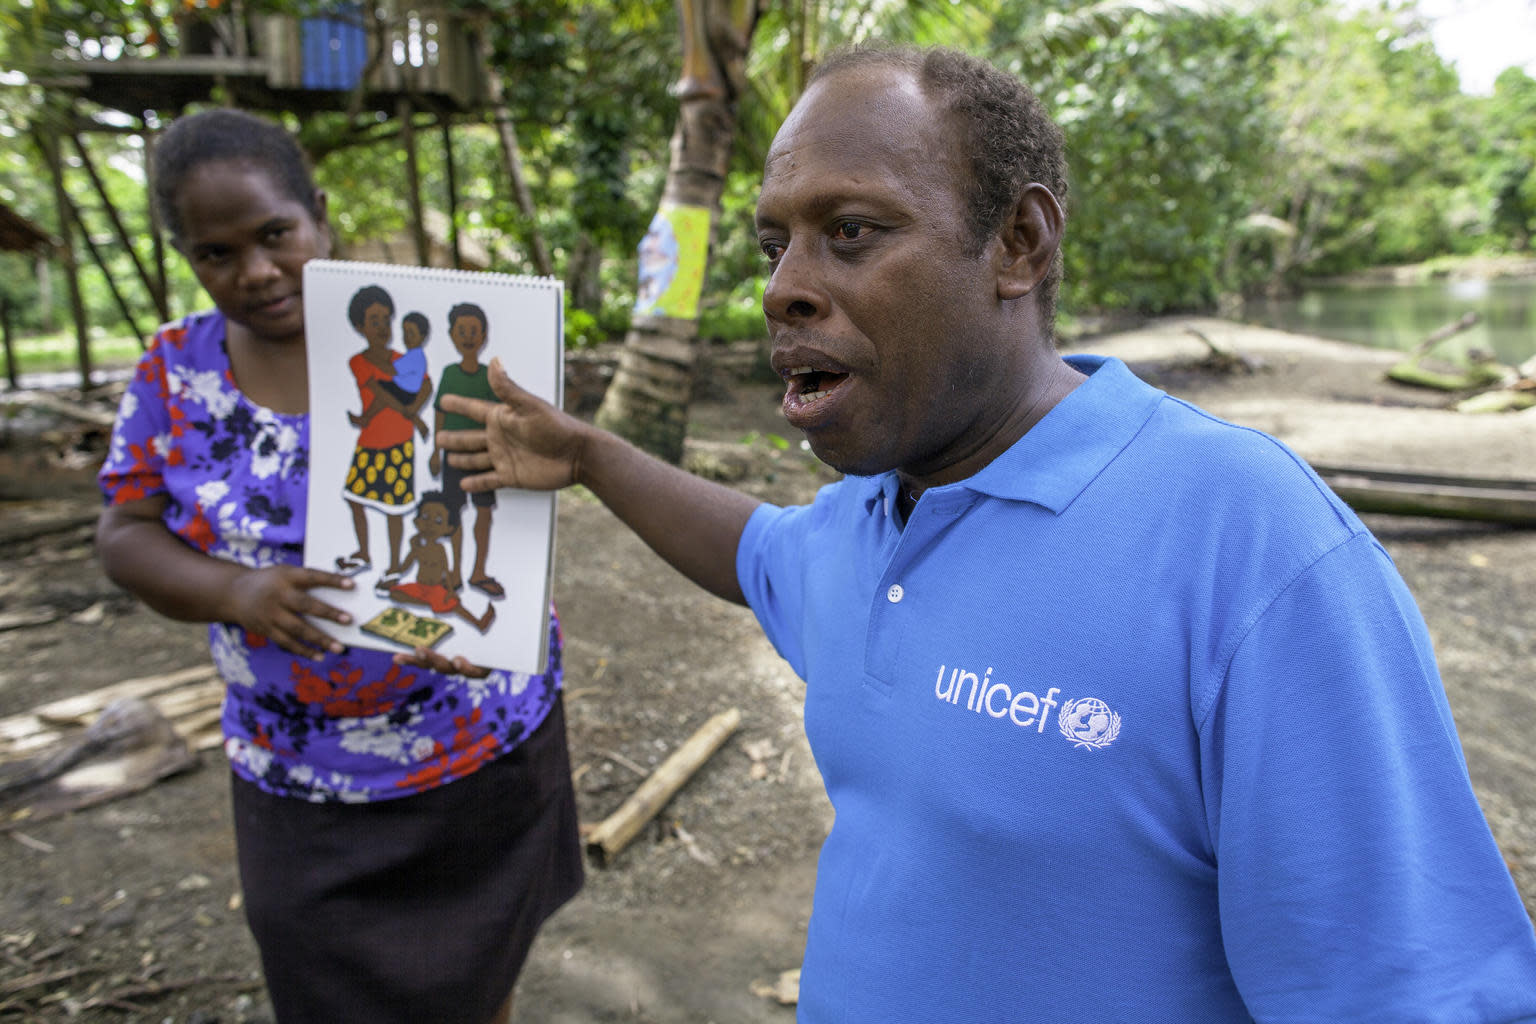 UNICEF Health Worker Paul Maesiala advises mothers and educates families on the importance of a nutritious diet